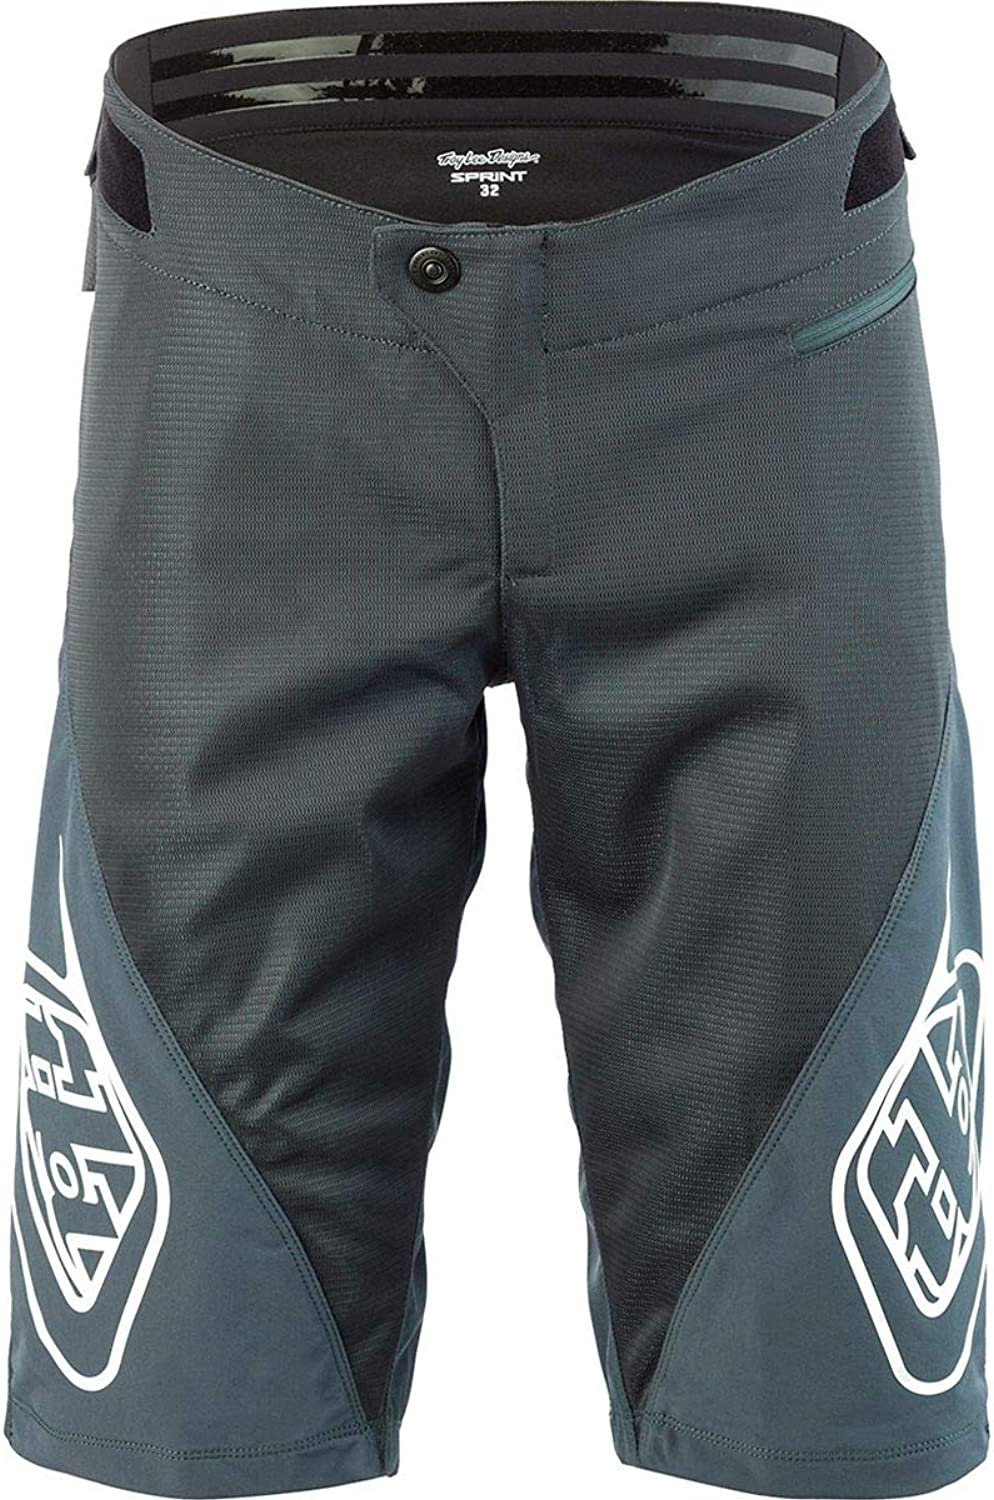 Troy Lee Designs Sprint Shorts Charcoal 2019